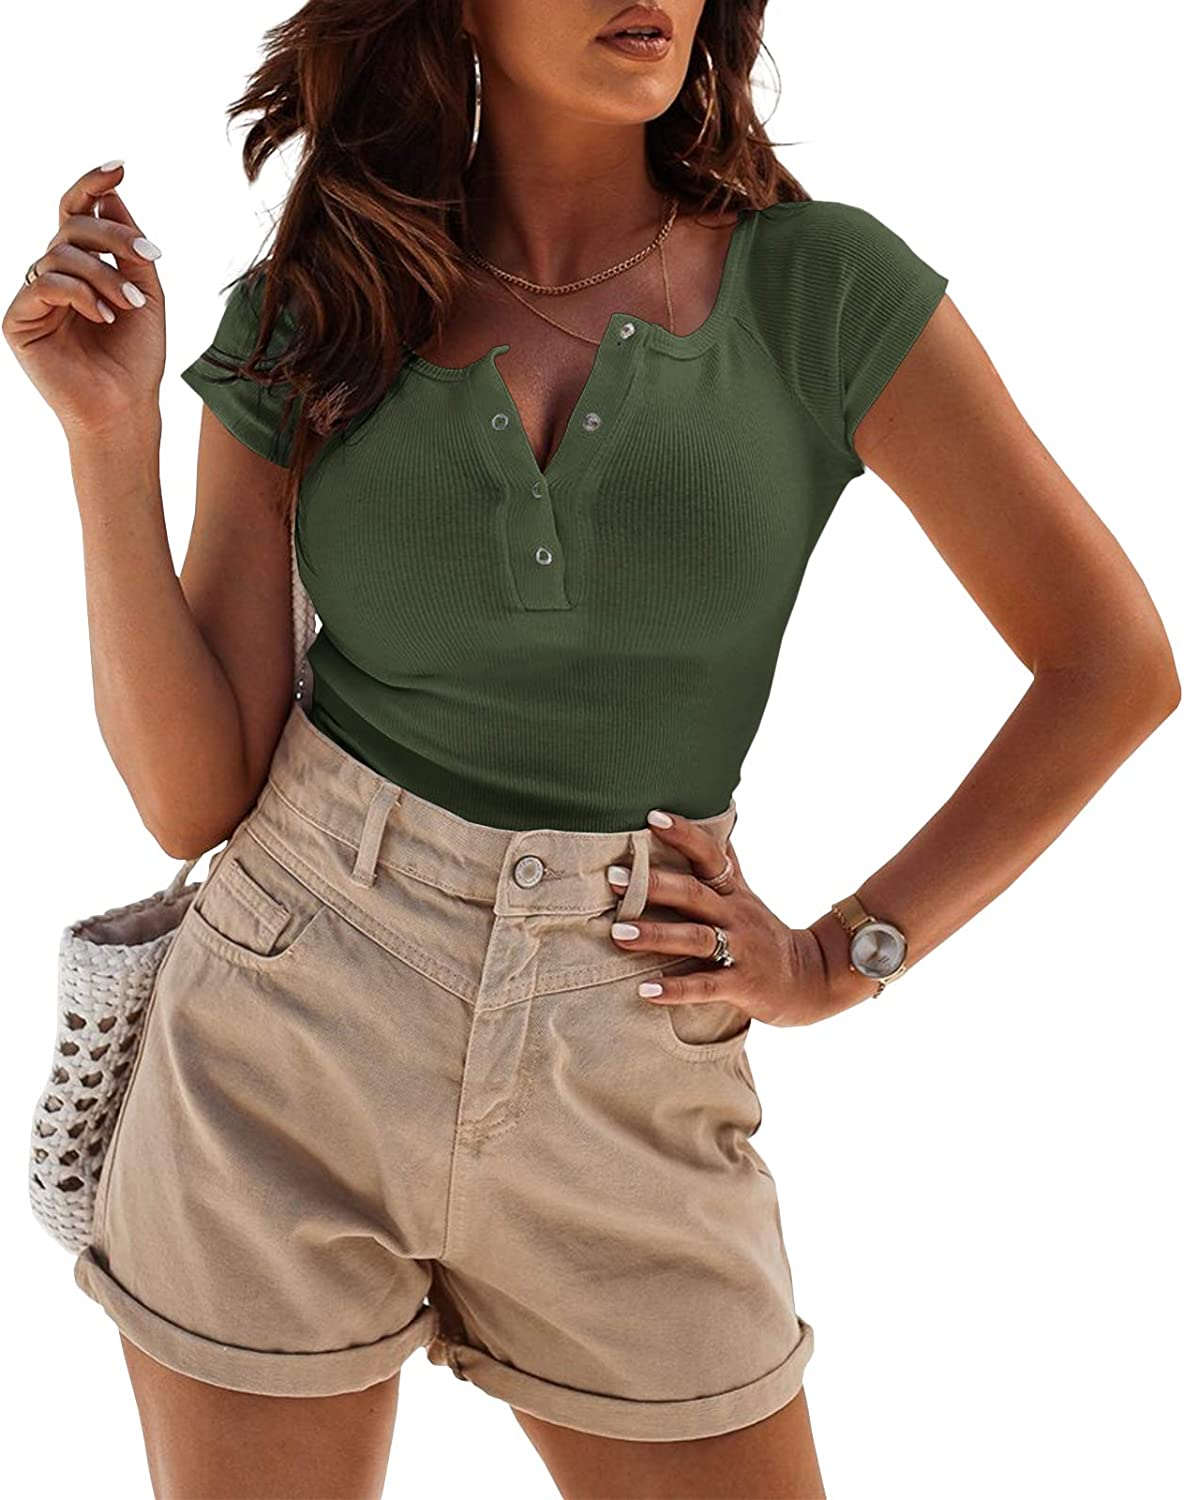 Xineppu Womens Scoop Neck Henley Shirt Short Sleeve Ribbed Basic Button Down Tees Blouse